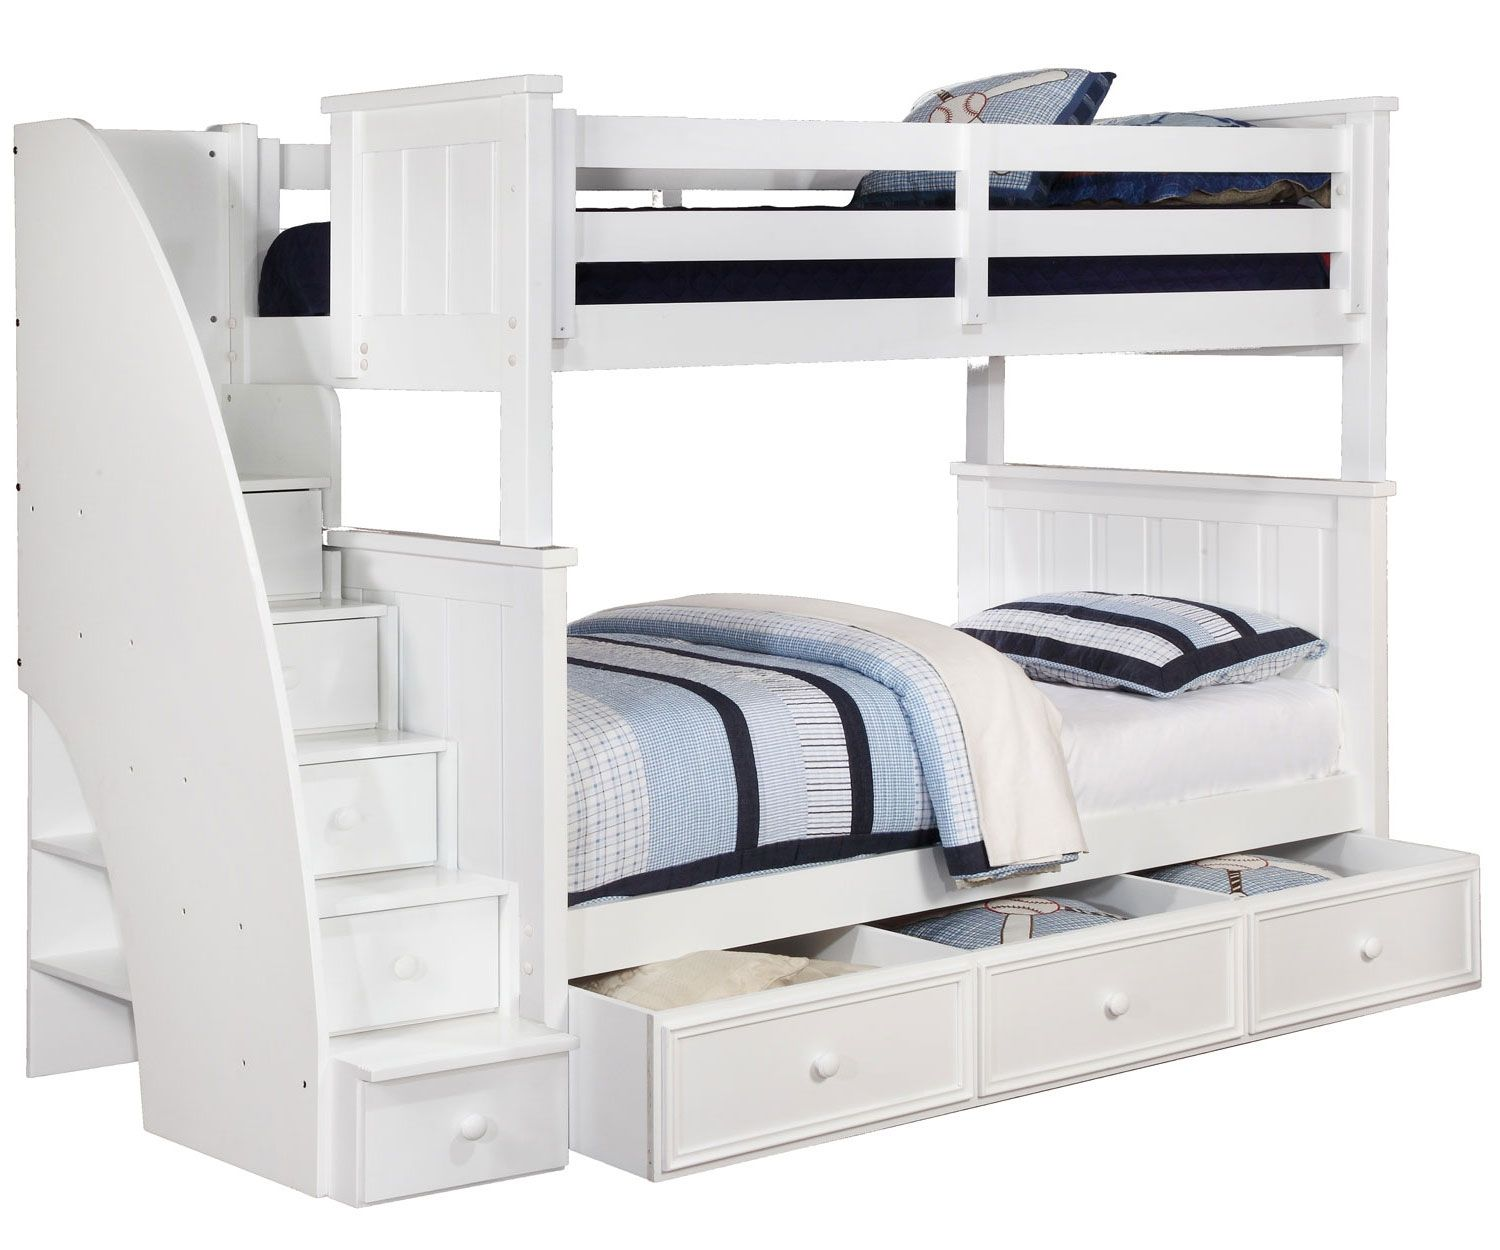 Abel Full Over Full Bunk Bed With Drawers Staircase Bunk Bed Bunk Beds With Drawers Bunk Bed With Trundle